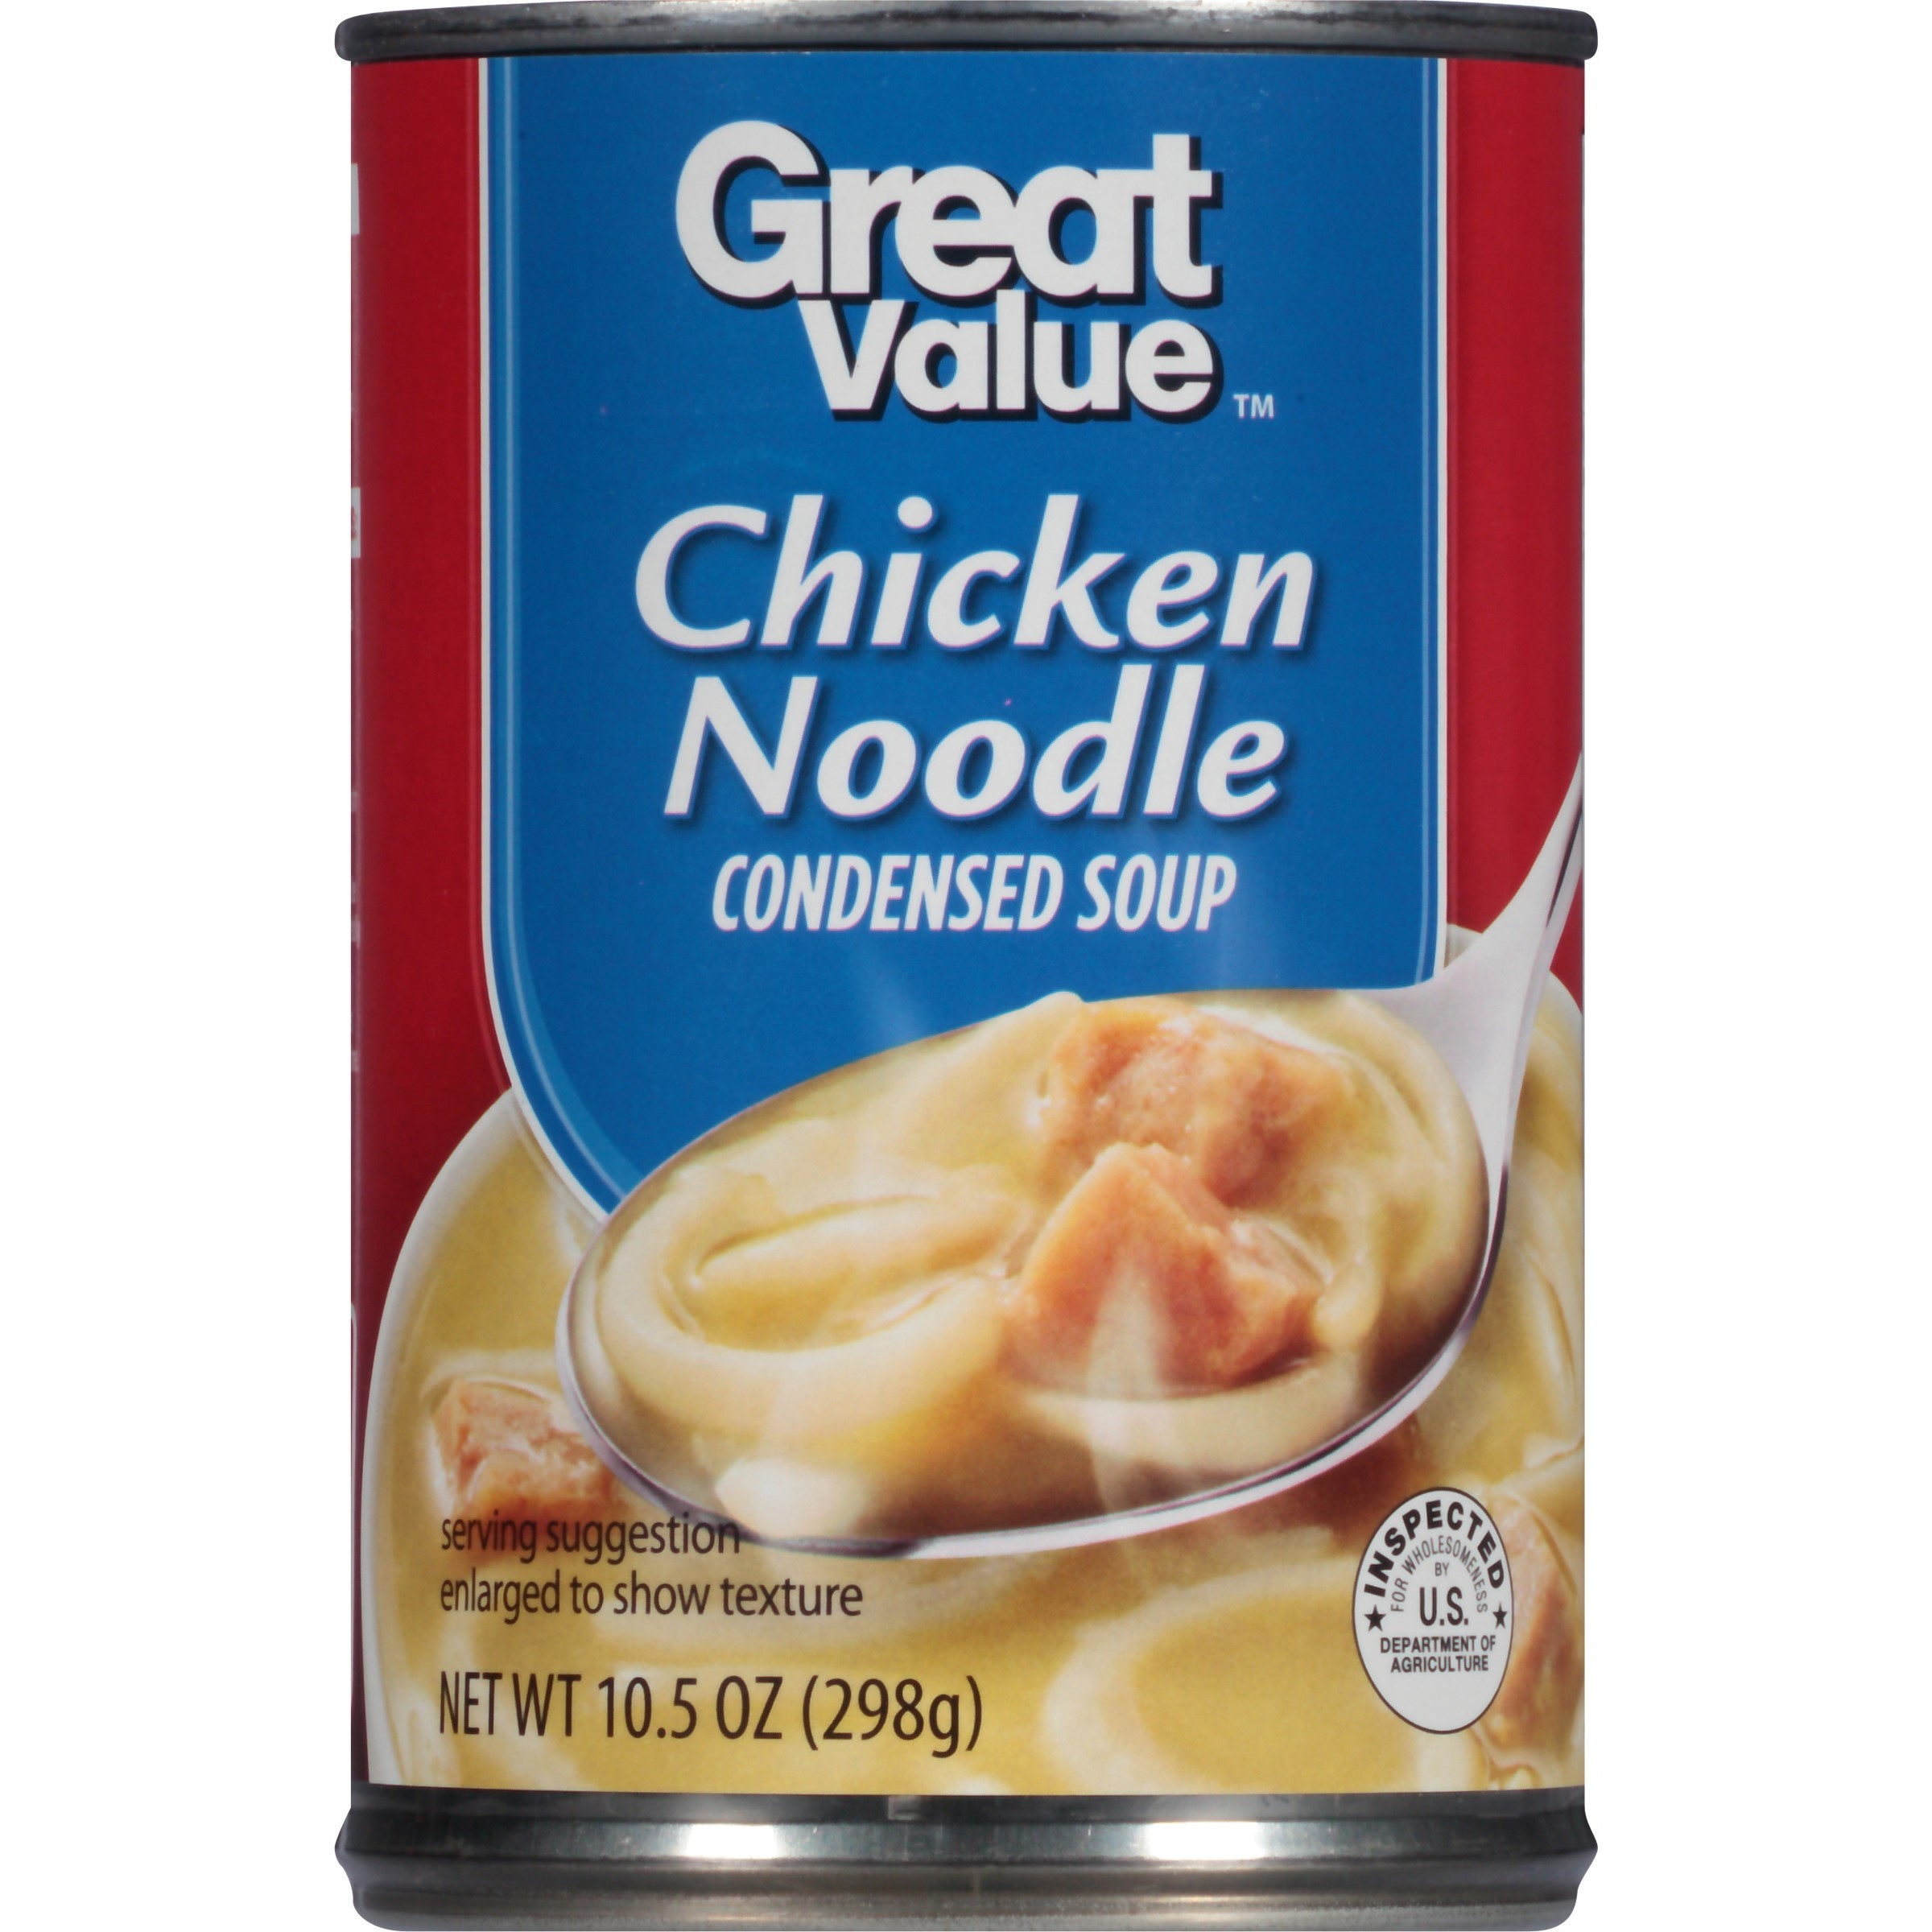 Great Value Condensed Soup, Chicken Noodle, 10.5 Oz